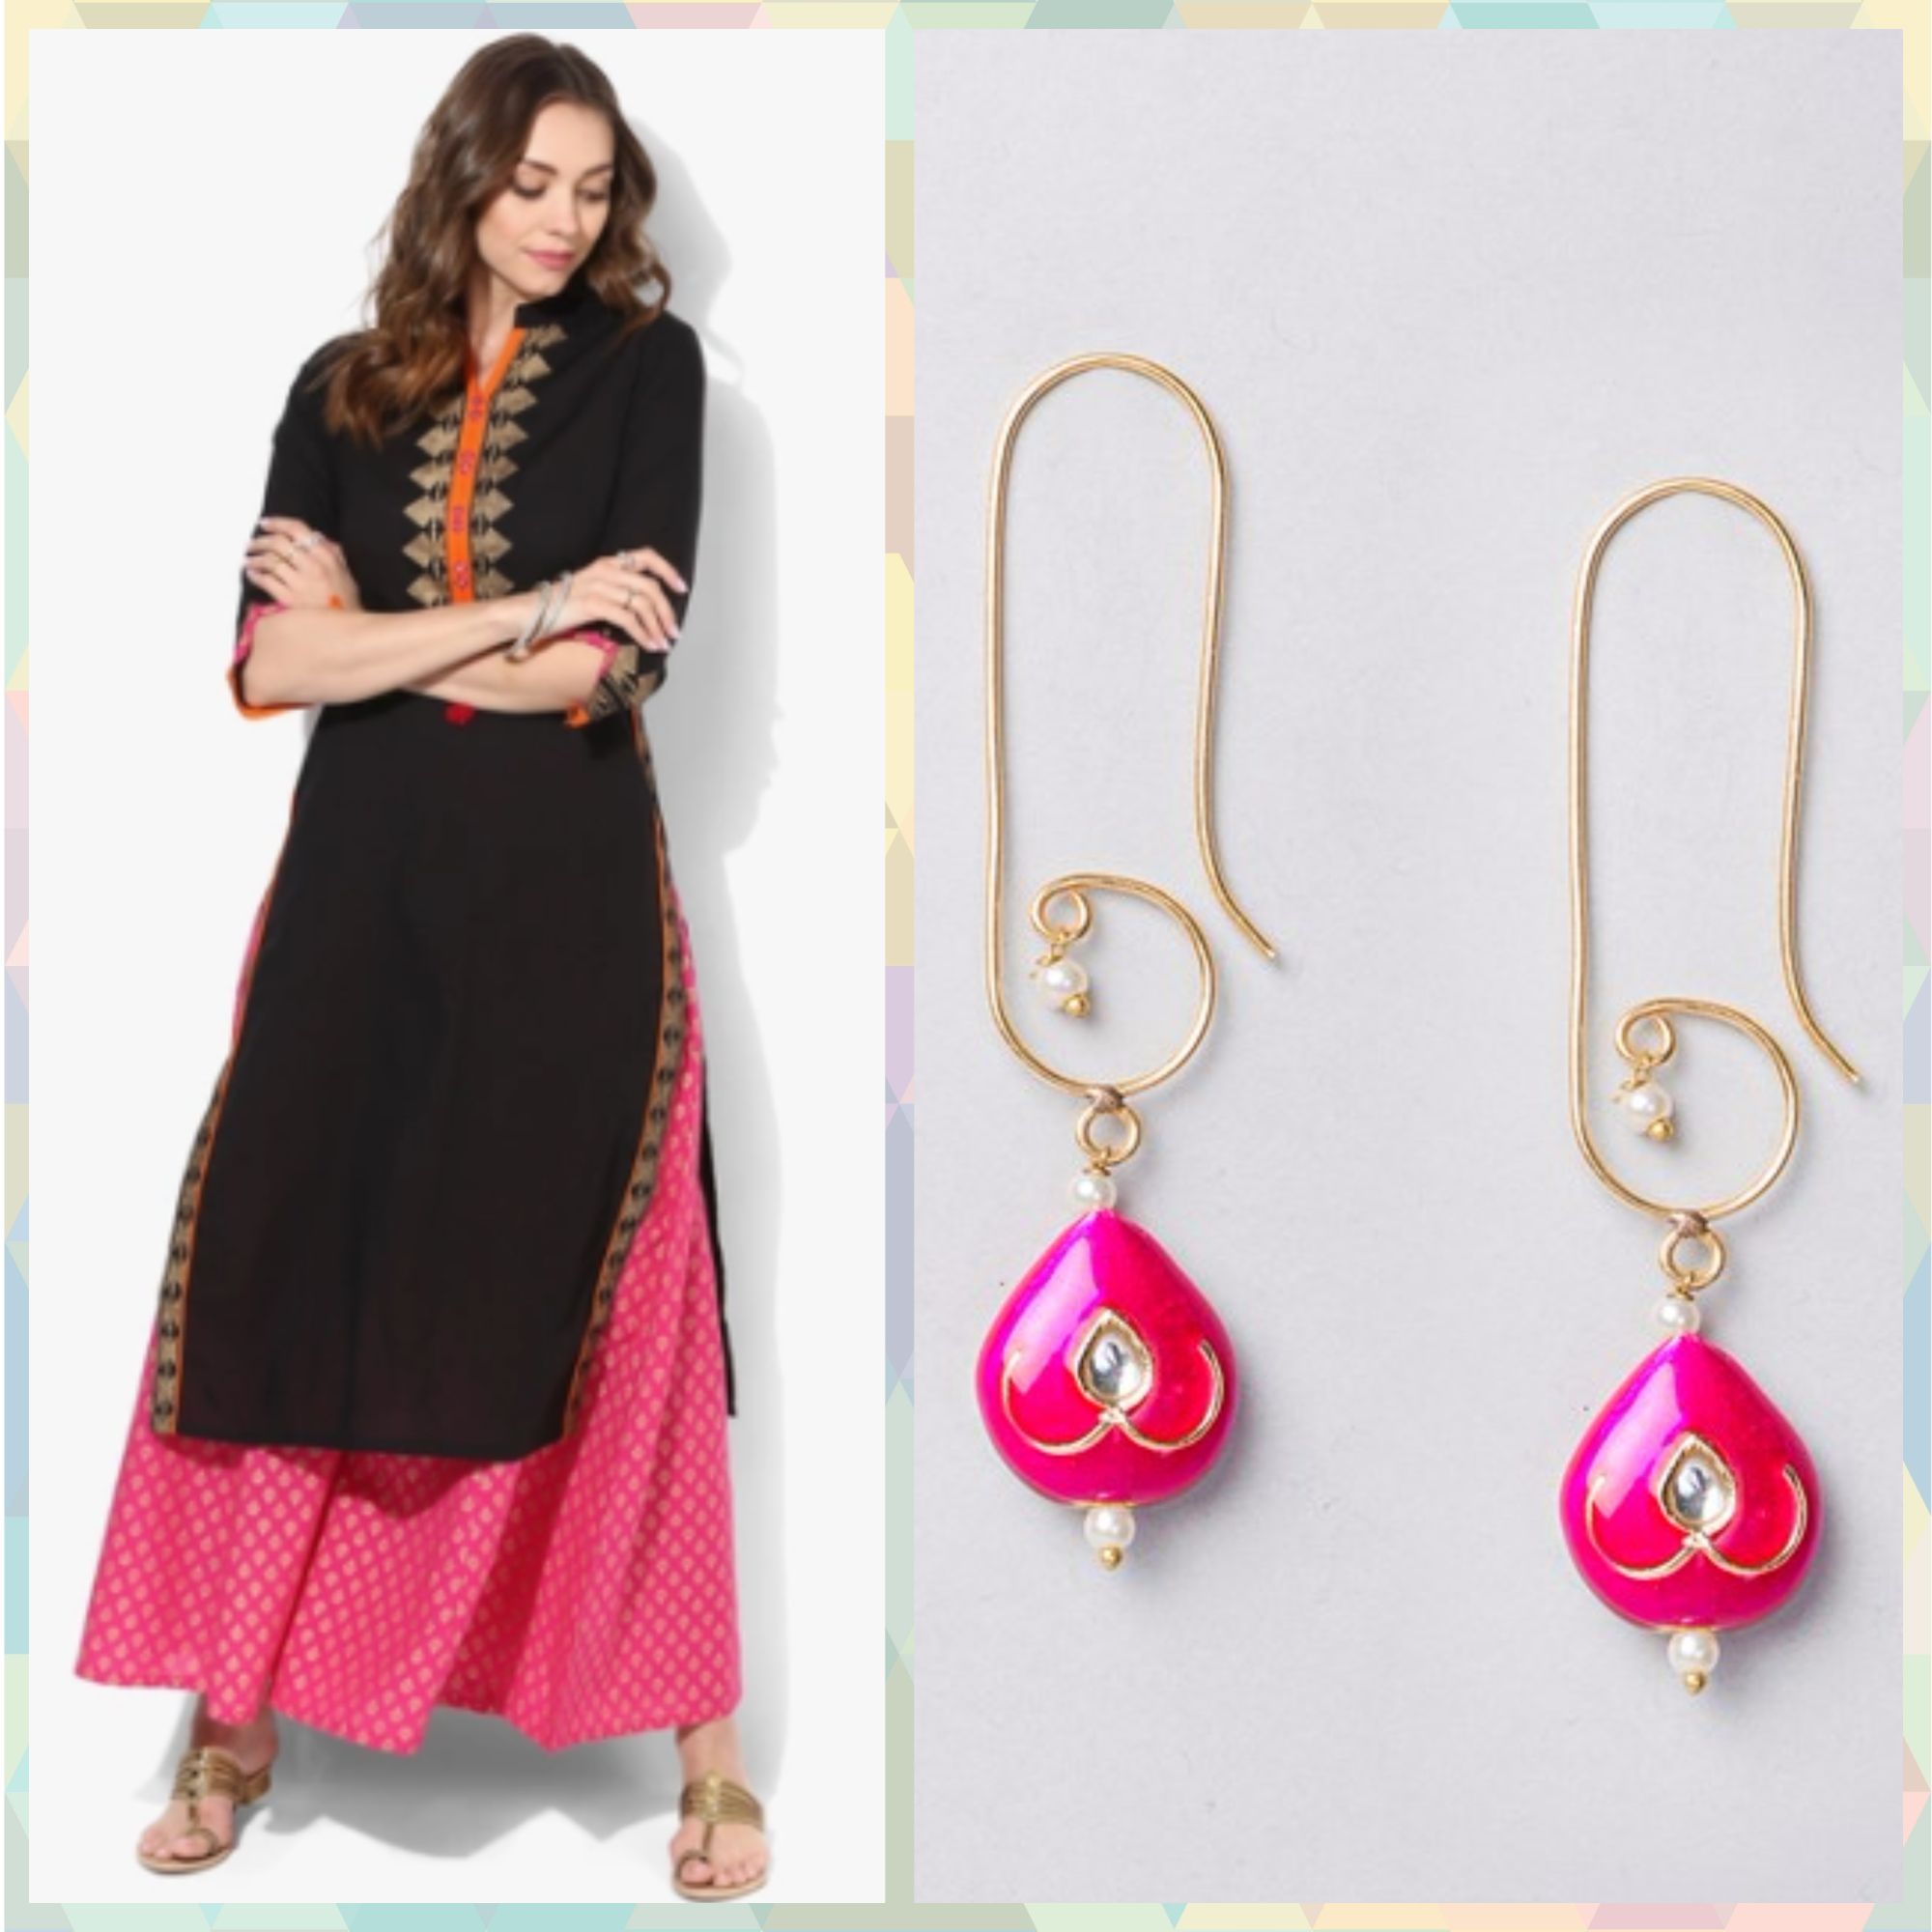 2-outfits for when you are on your period - Indian wear to the rescue!